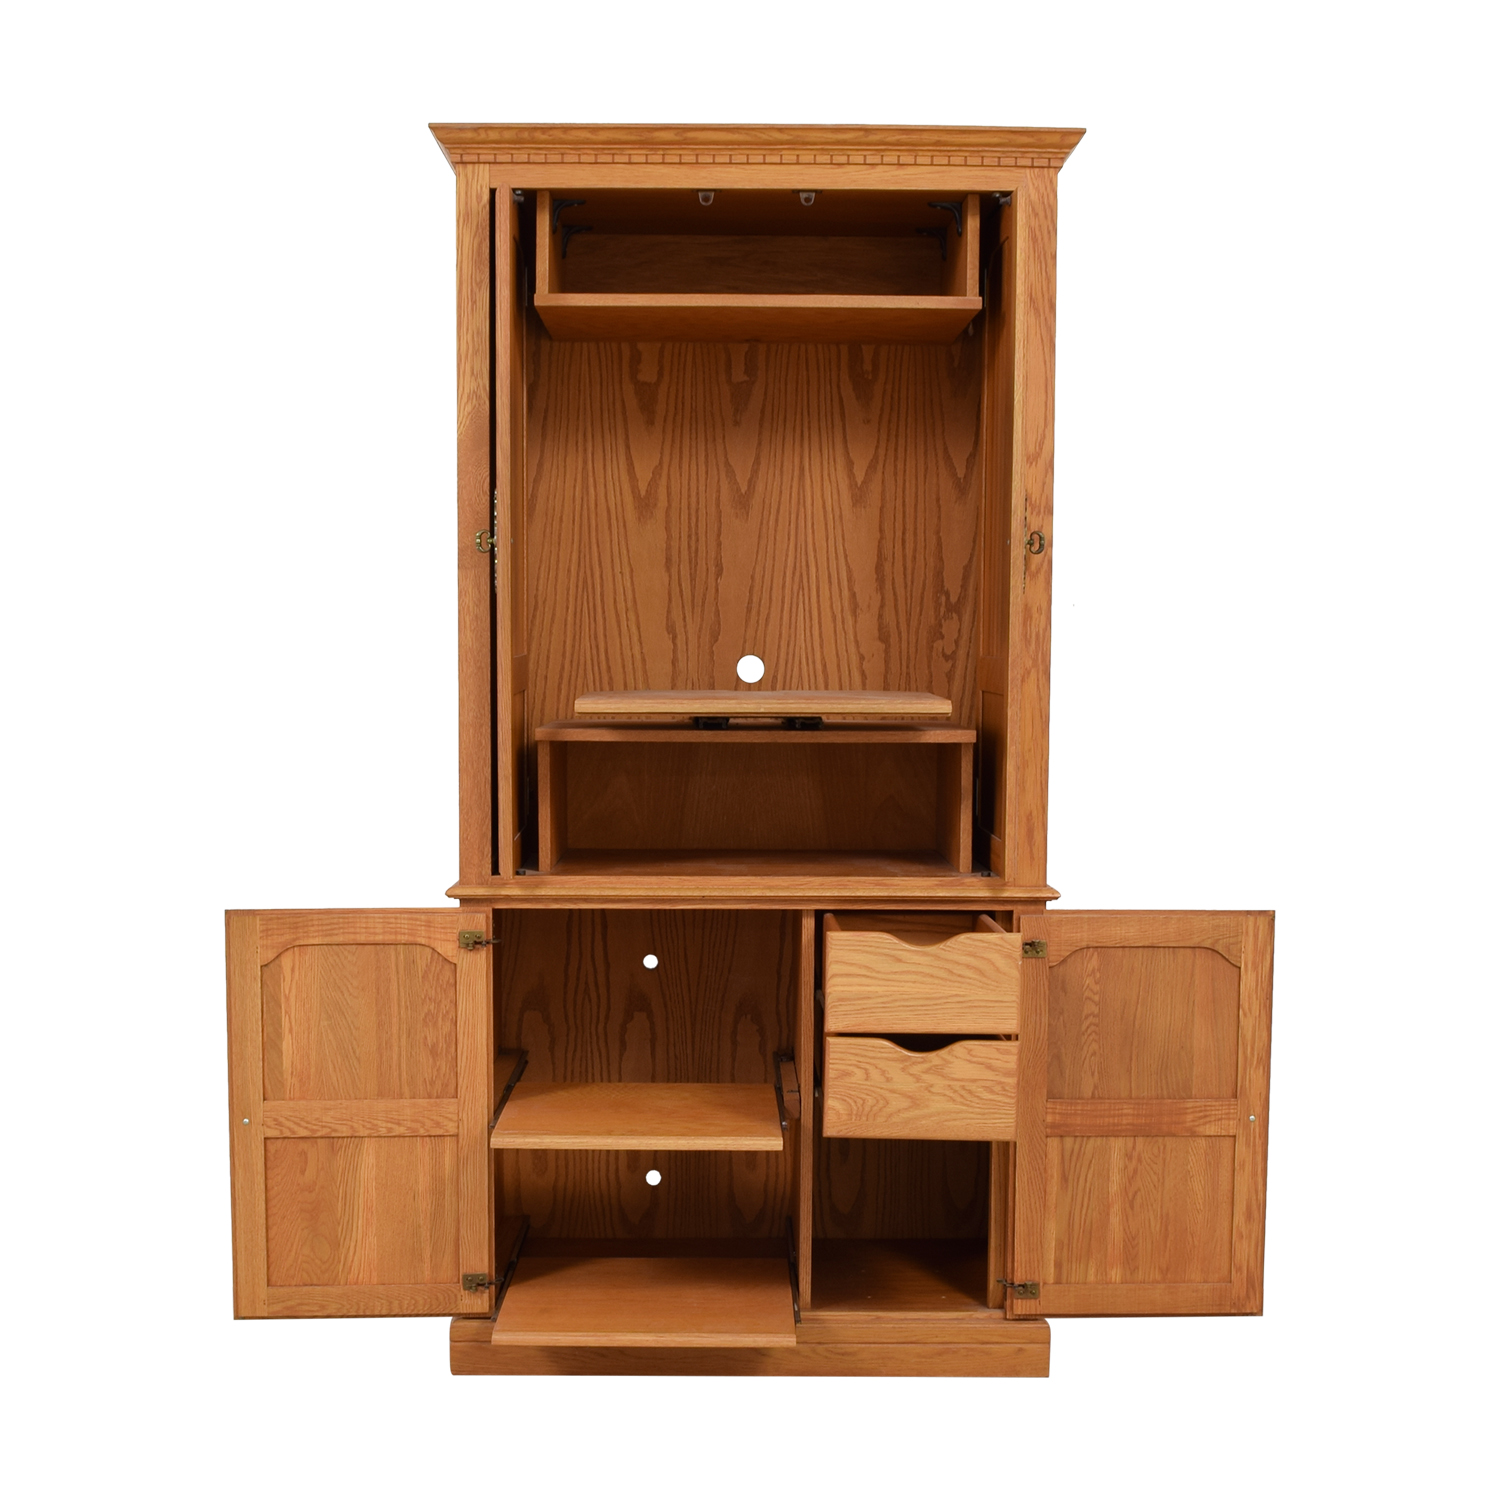 Custom TV Armoire with Drawers and Pull Out Shelves Storage